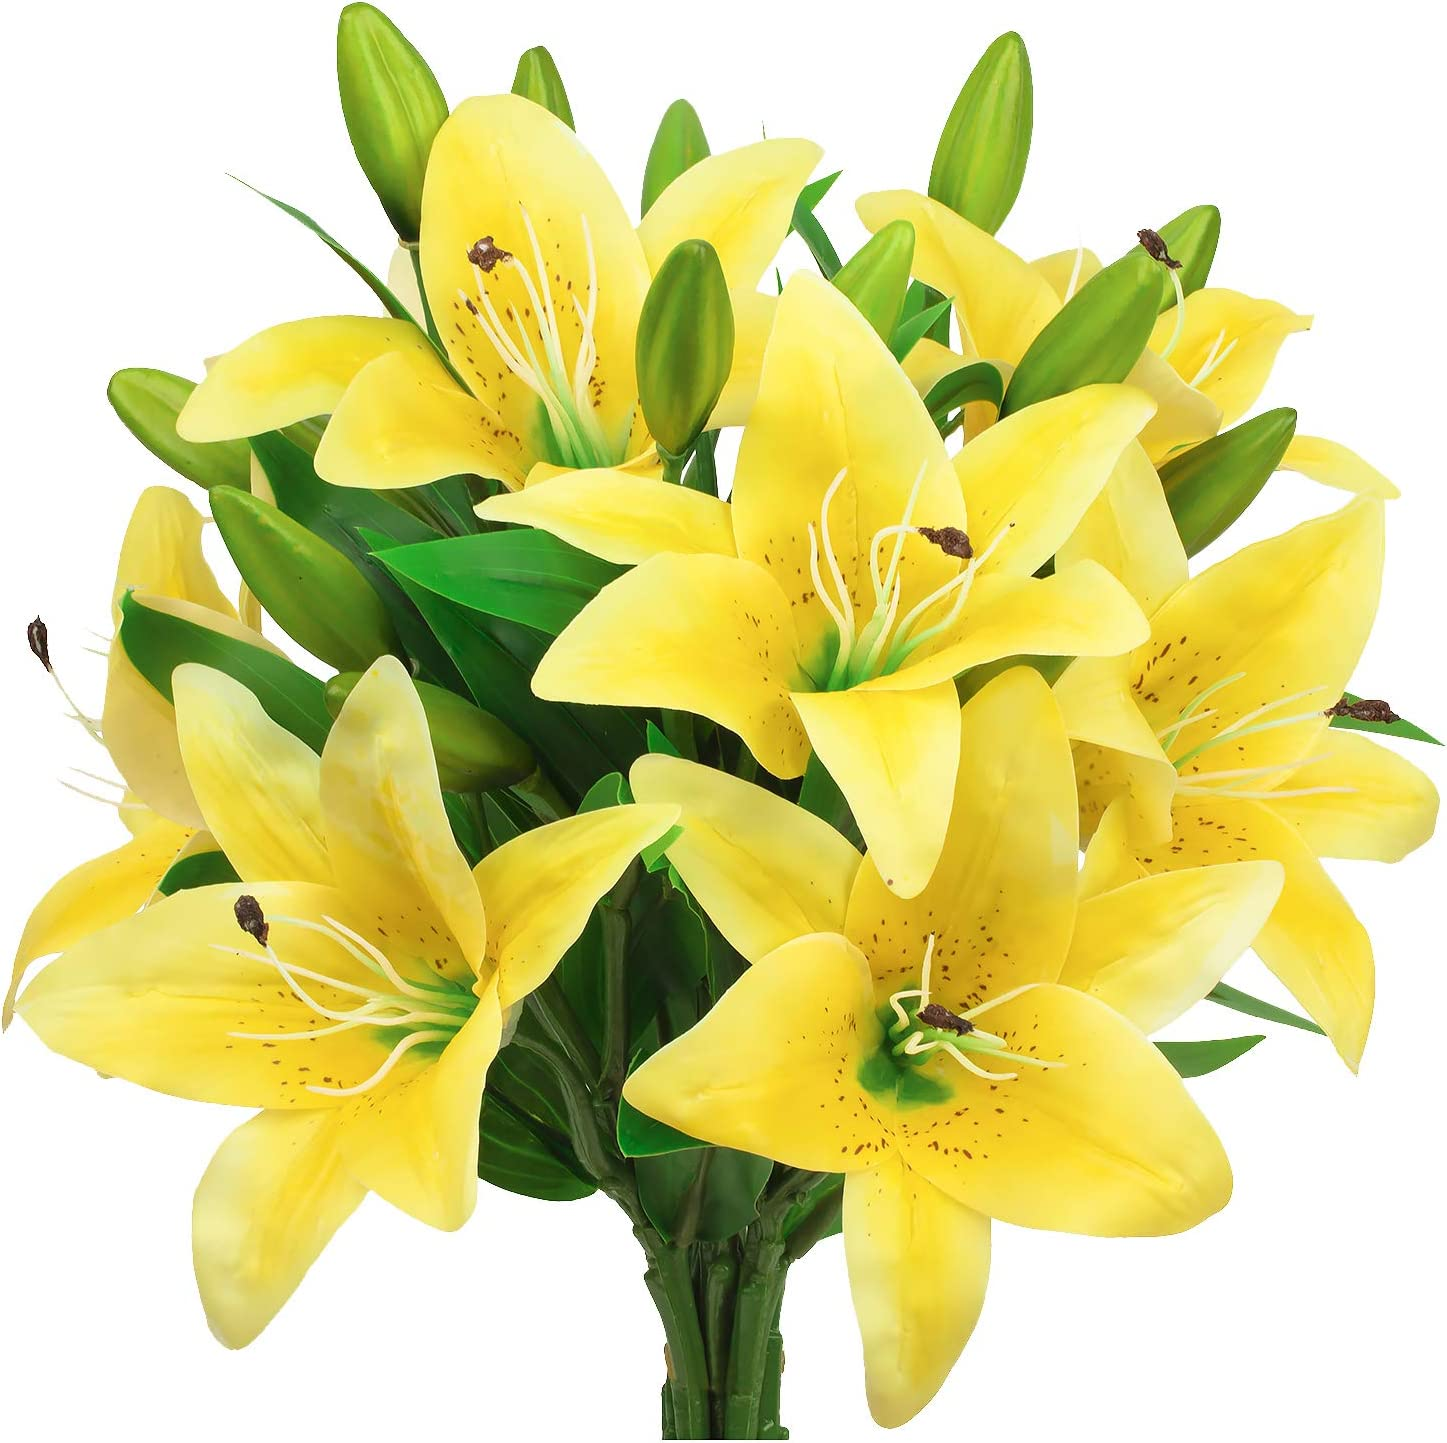 GPARK 8Pcs (Each 15'') Artificial Lily Flowers Bouquets Real Touch for Wedding Party Home Garden Kitchen Office Outdoor Greenery Wall Decor Yellow